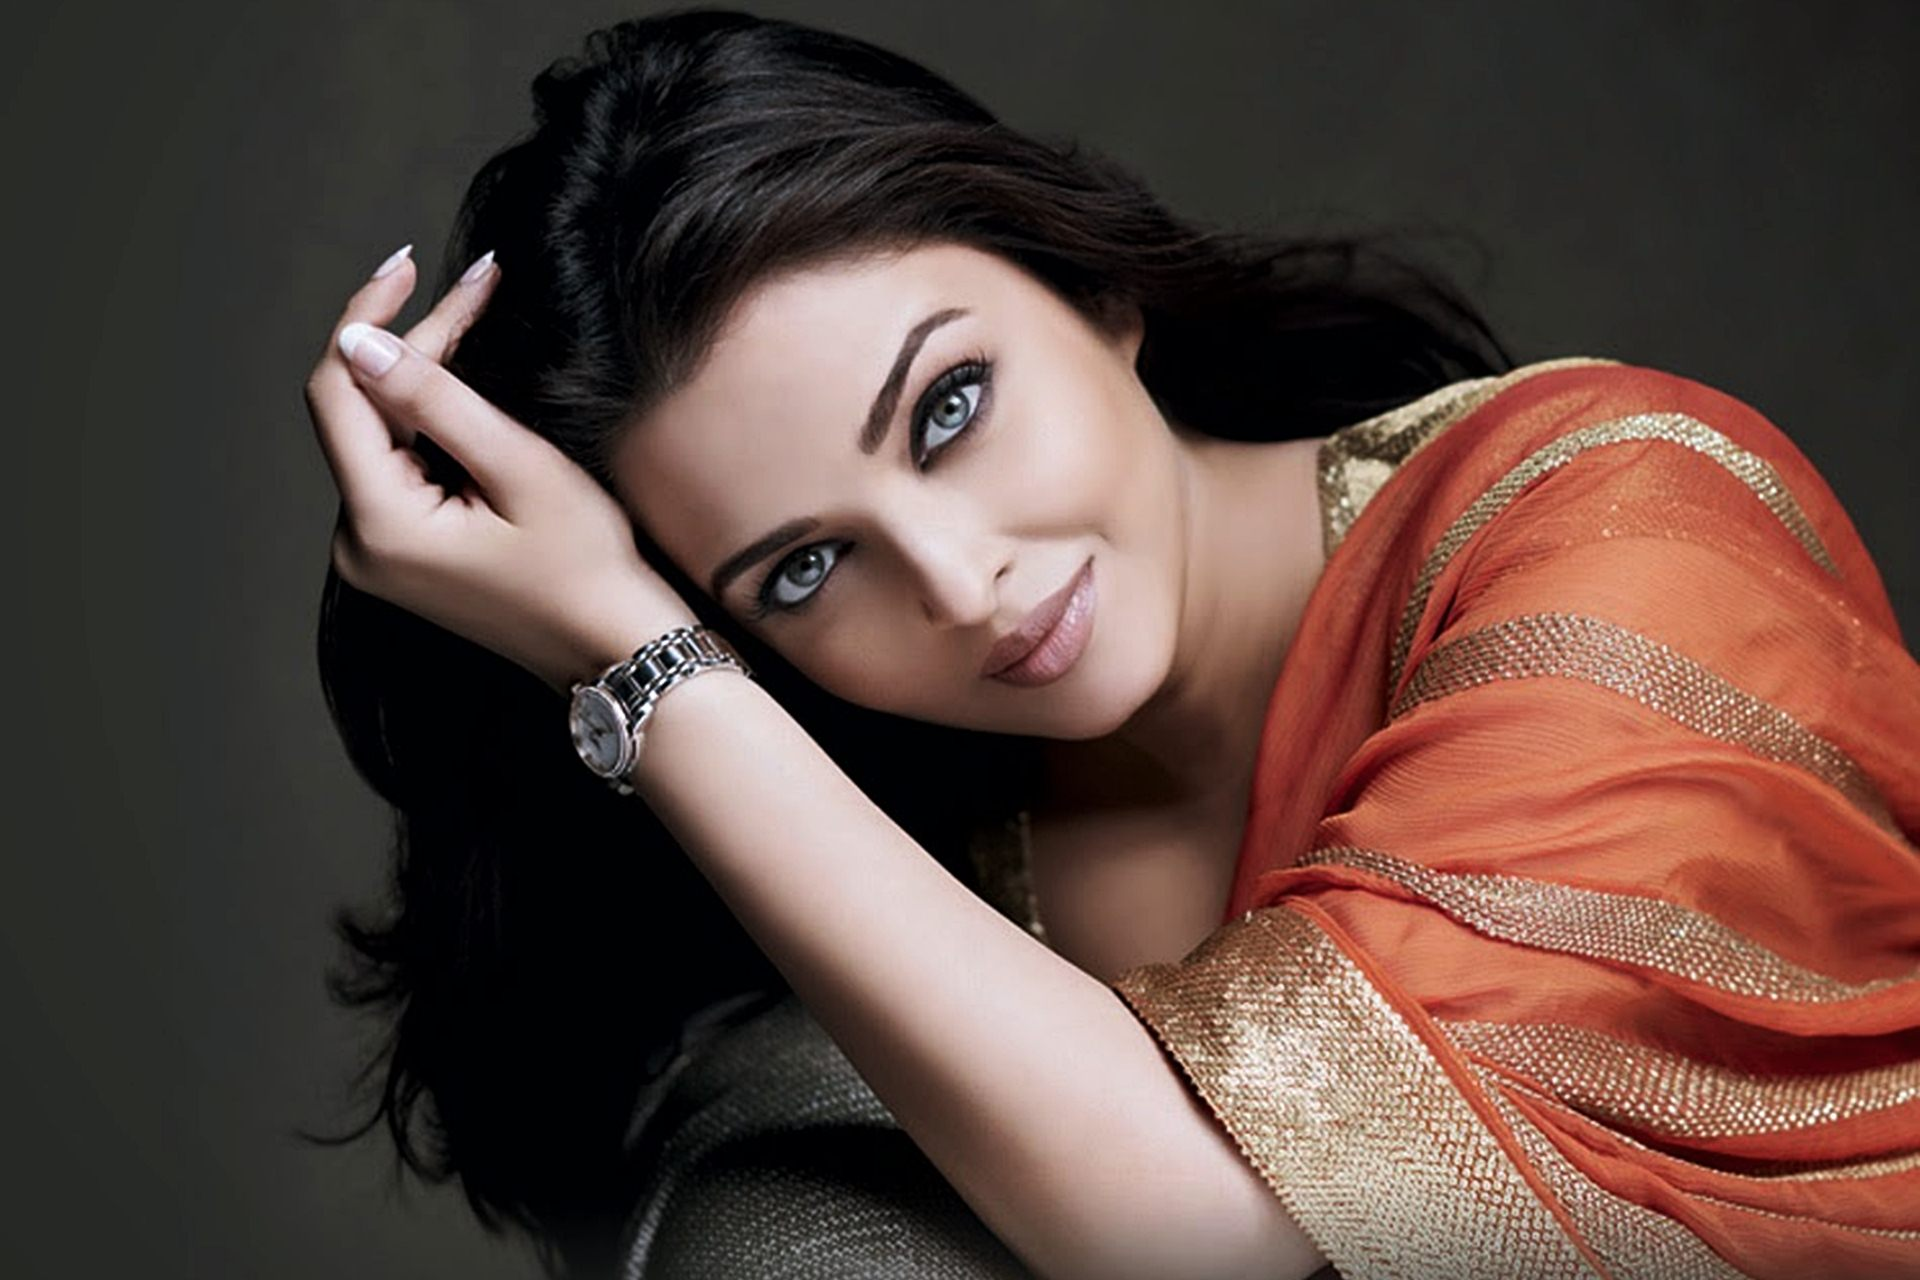 eyes of these actresses are just awesome